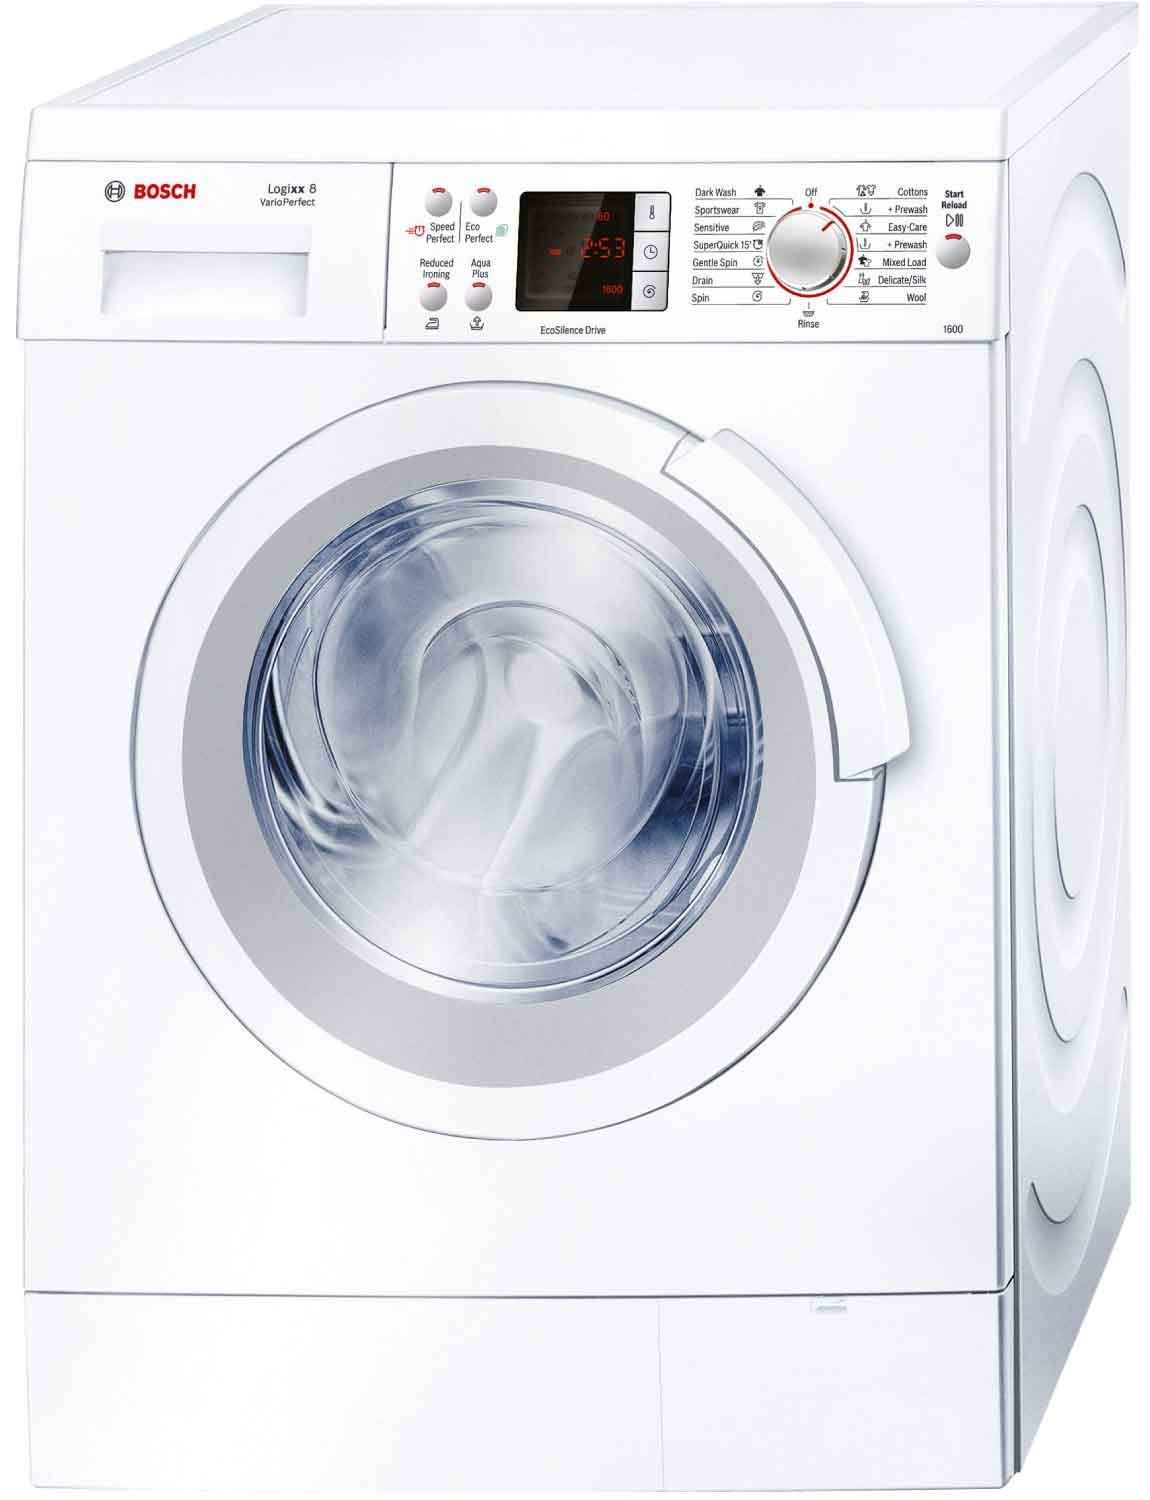 bosch washing machine bosch was32461gb was32461 bosch washing machine 11622